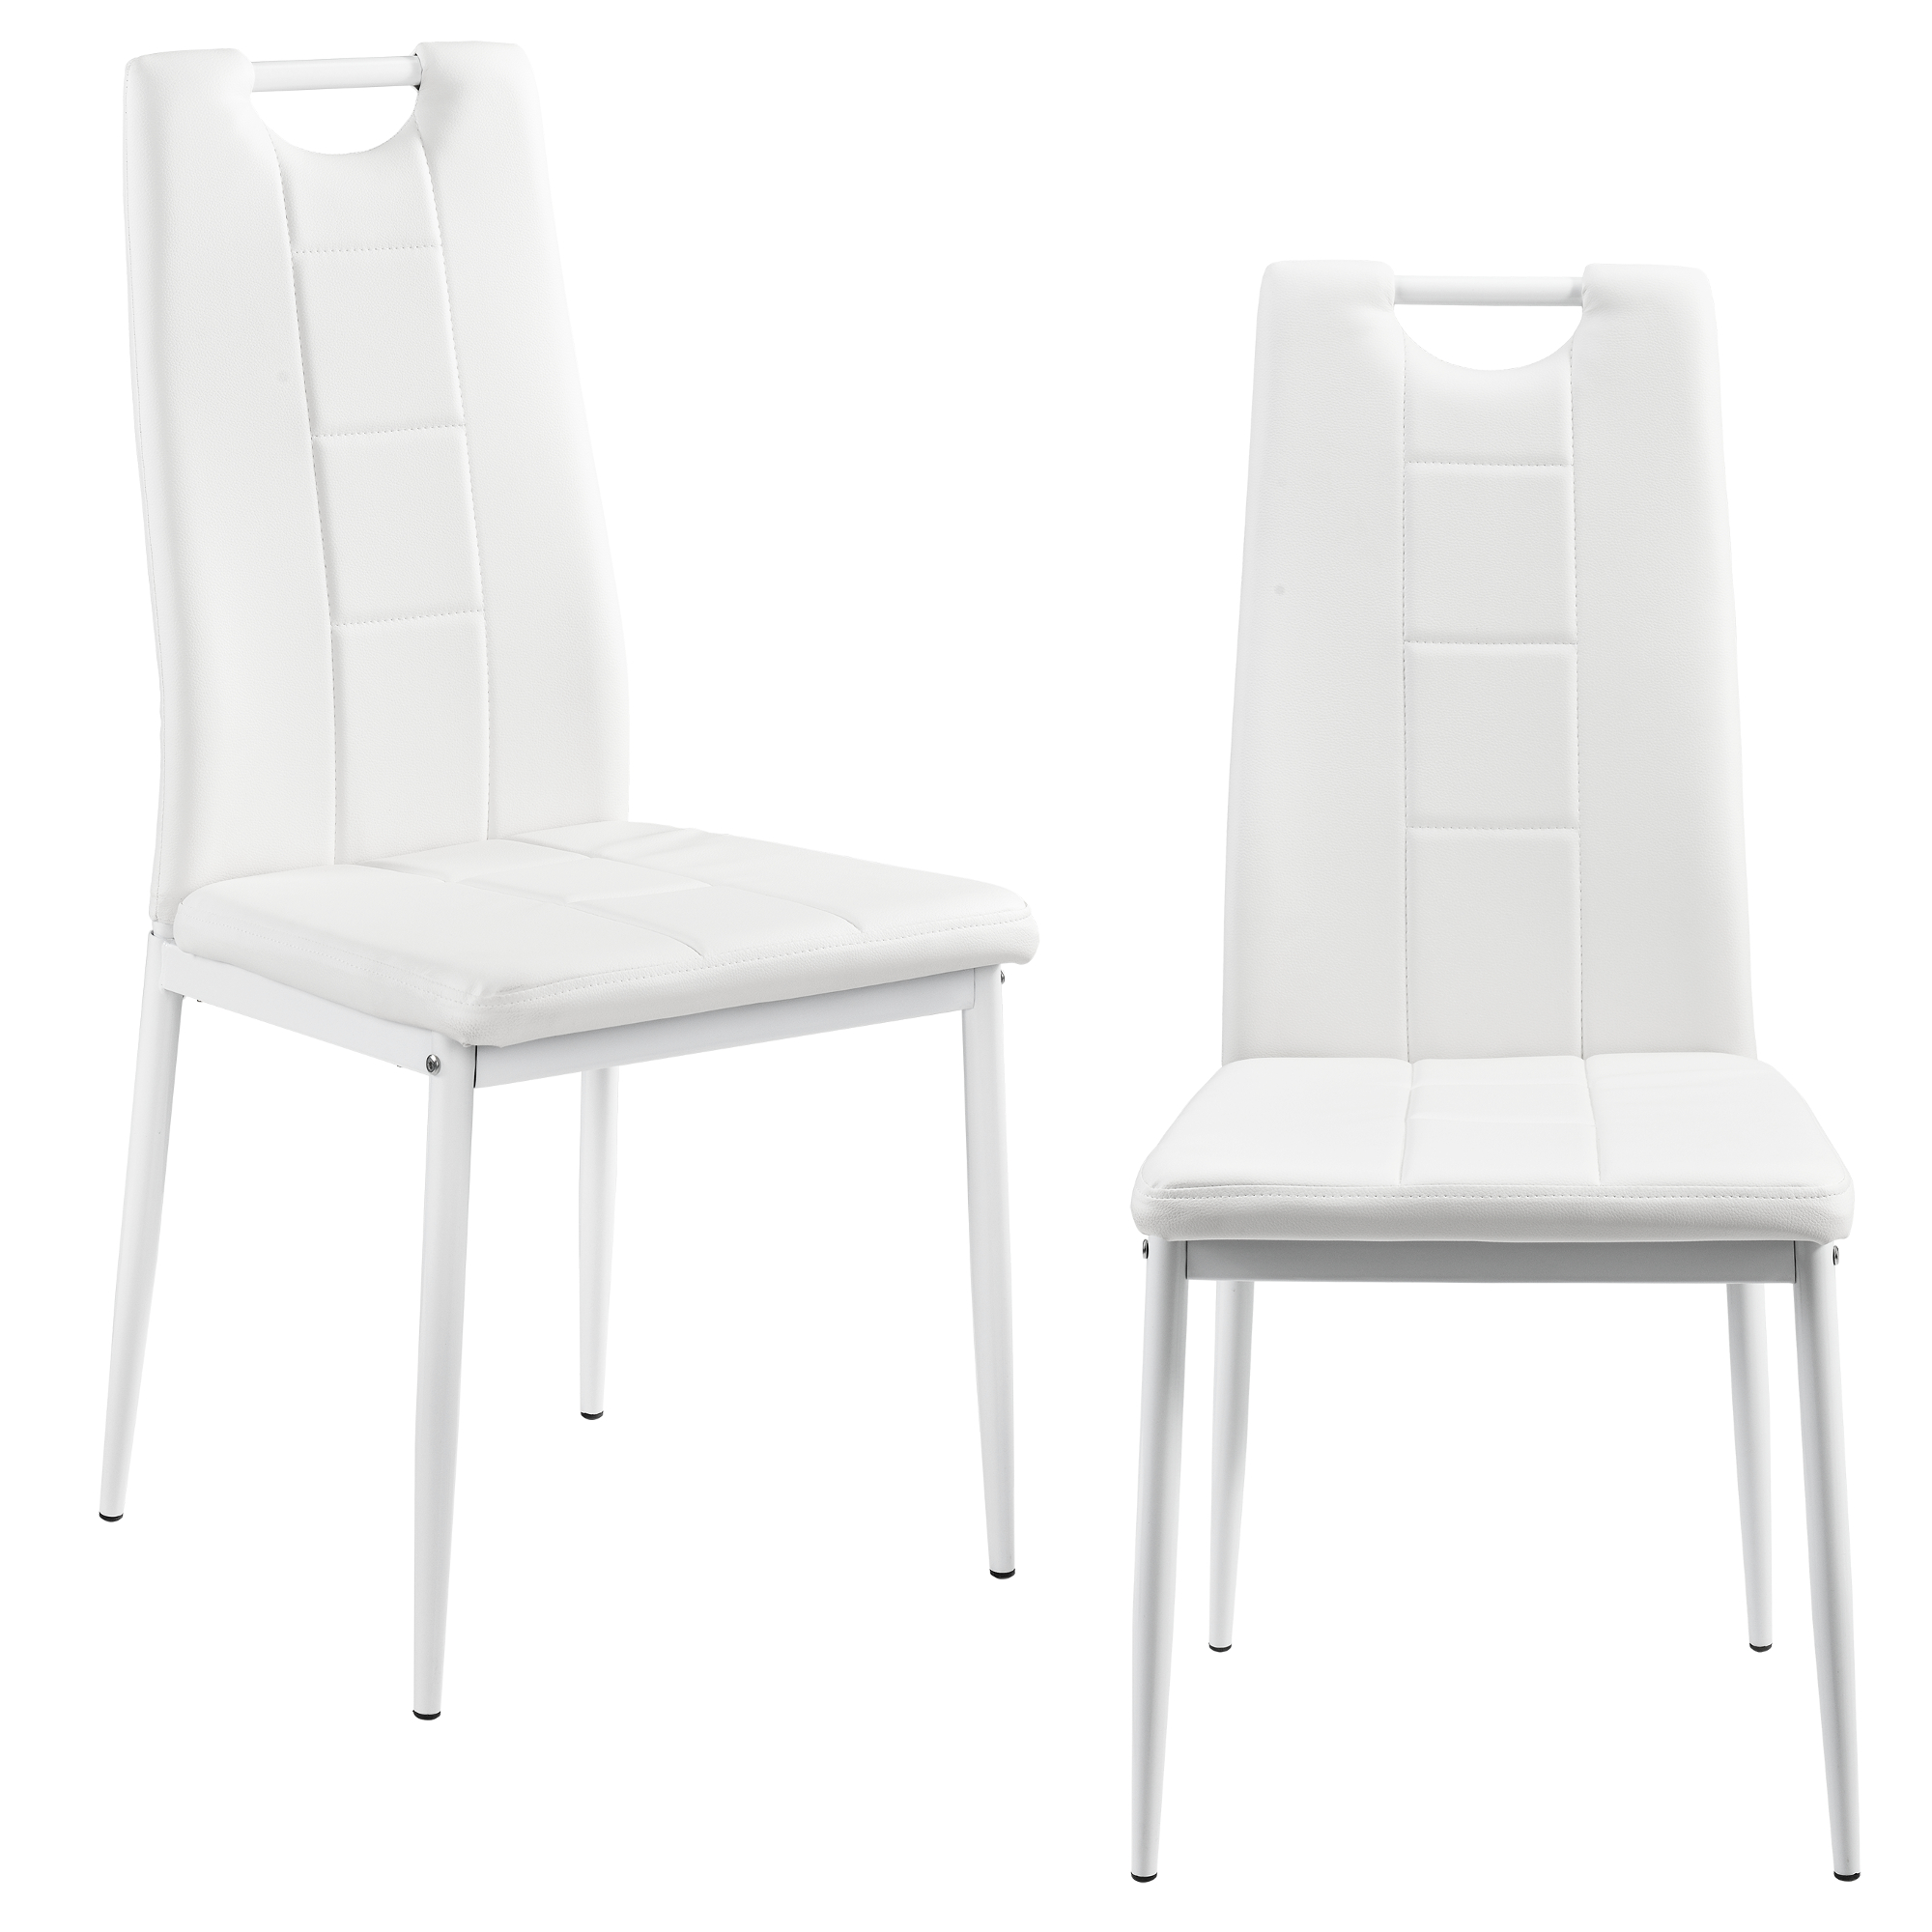 2x design chaises salle manger blanc chaise for Chaise plastique salle a manger